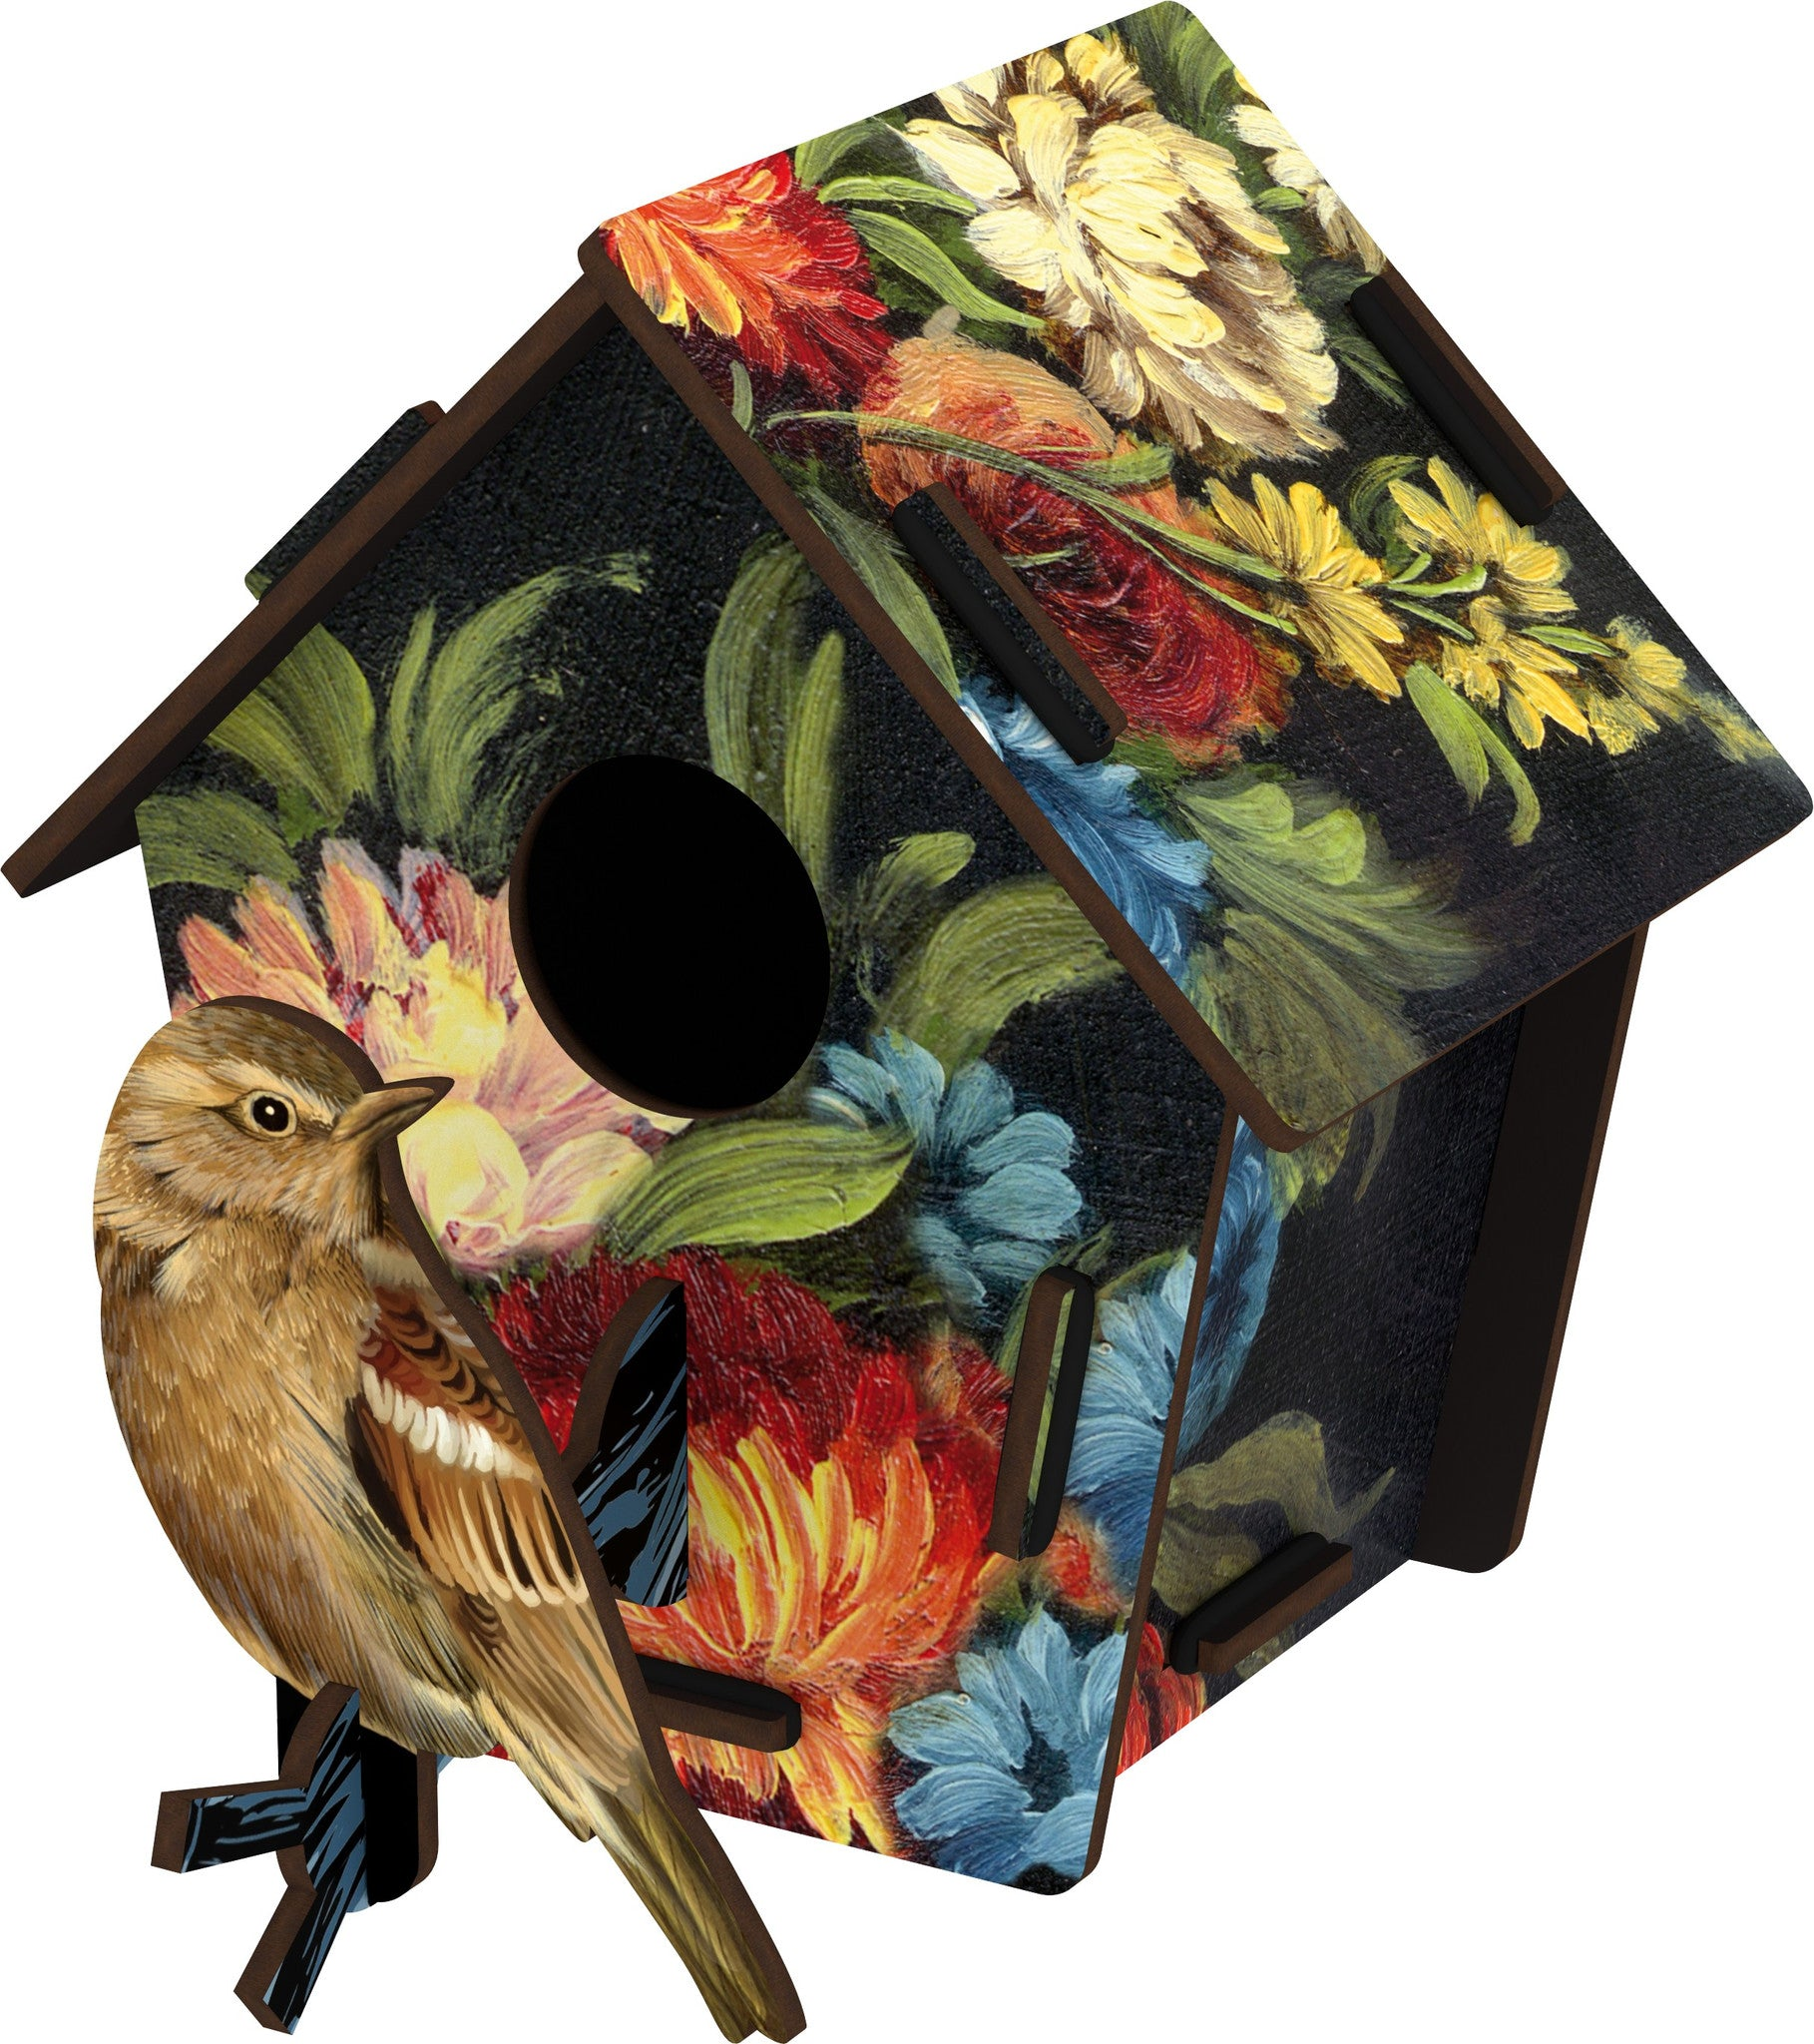 Bird House Small - Coup De Theatre, HOME DECOR, MIHO UNEXPECTED, - Fabrica